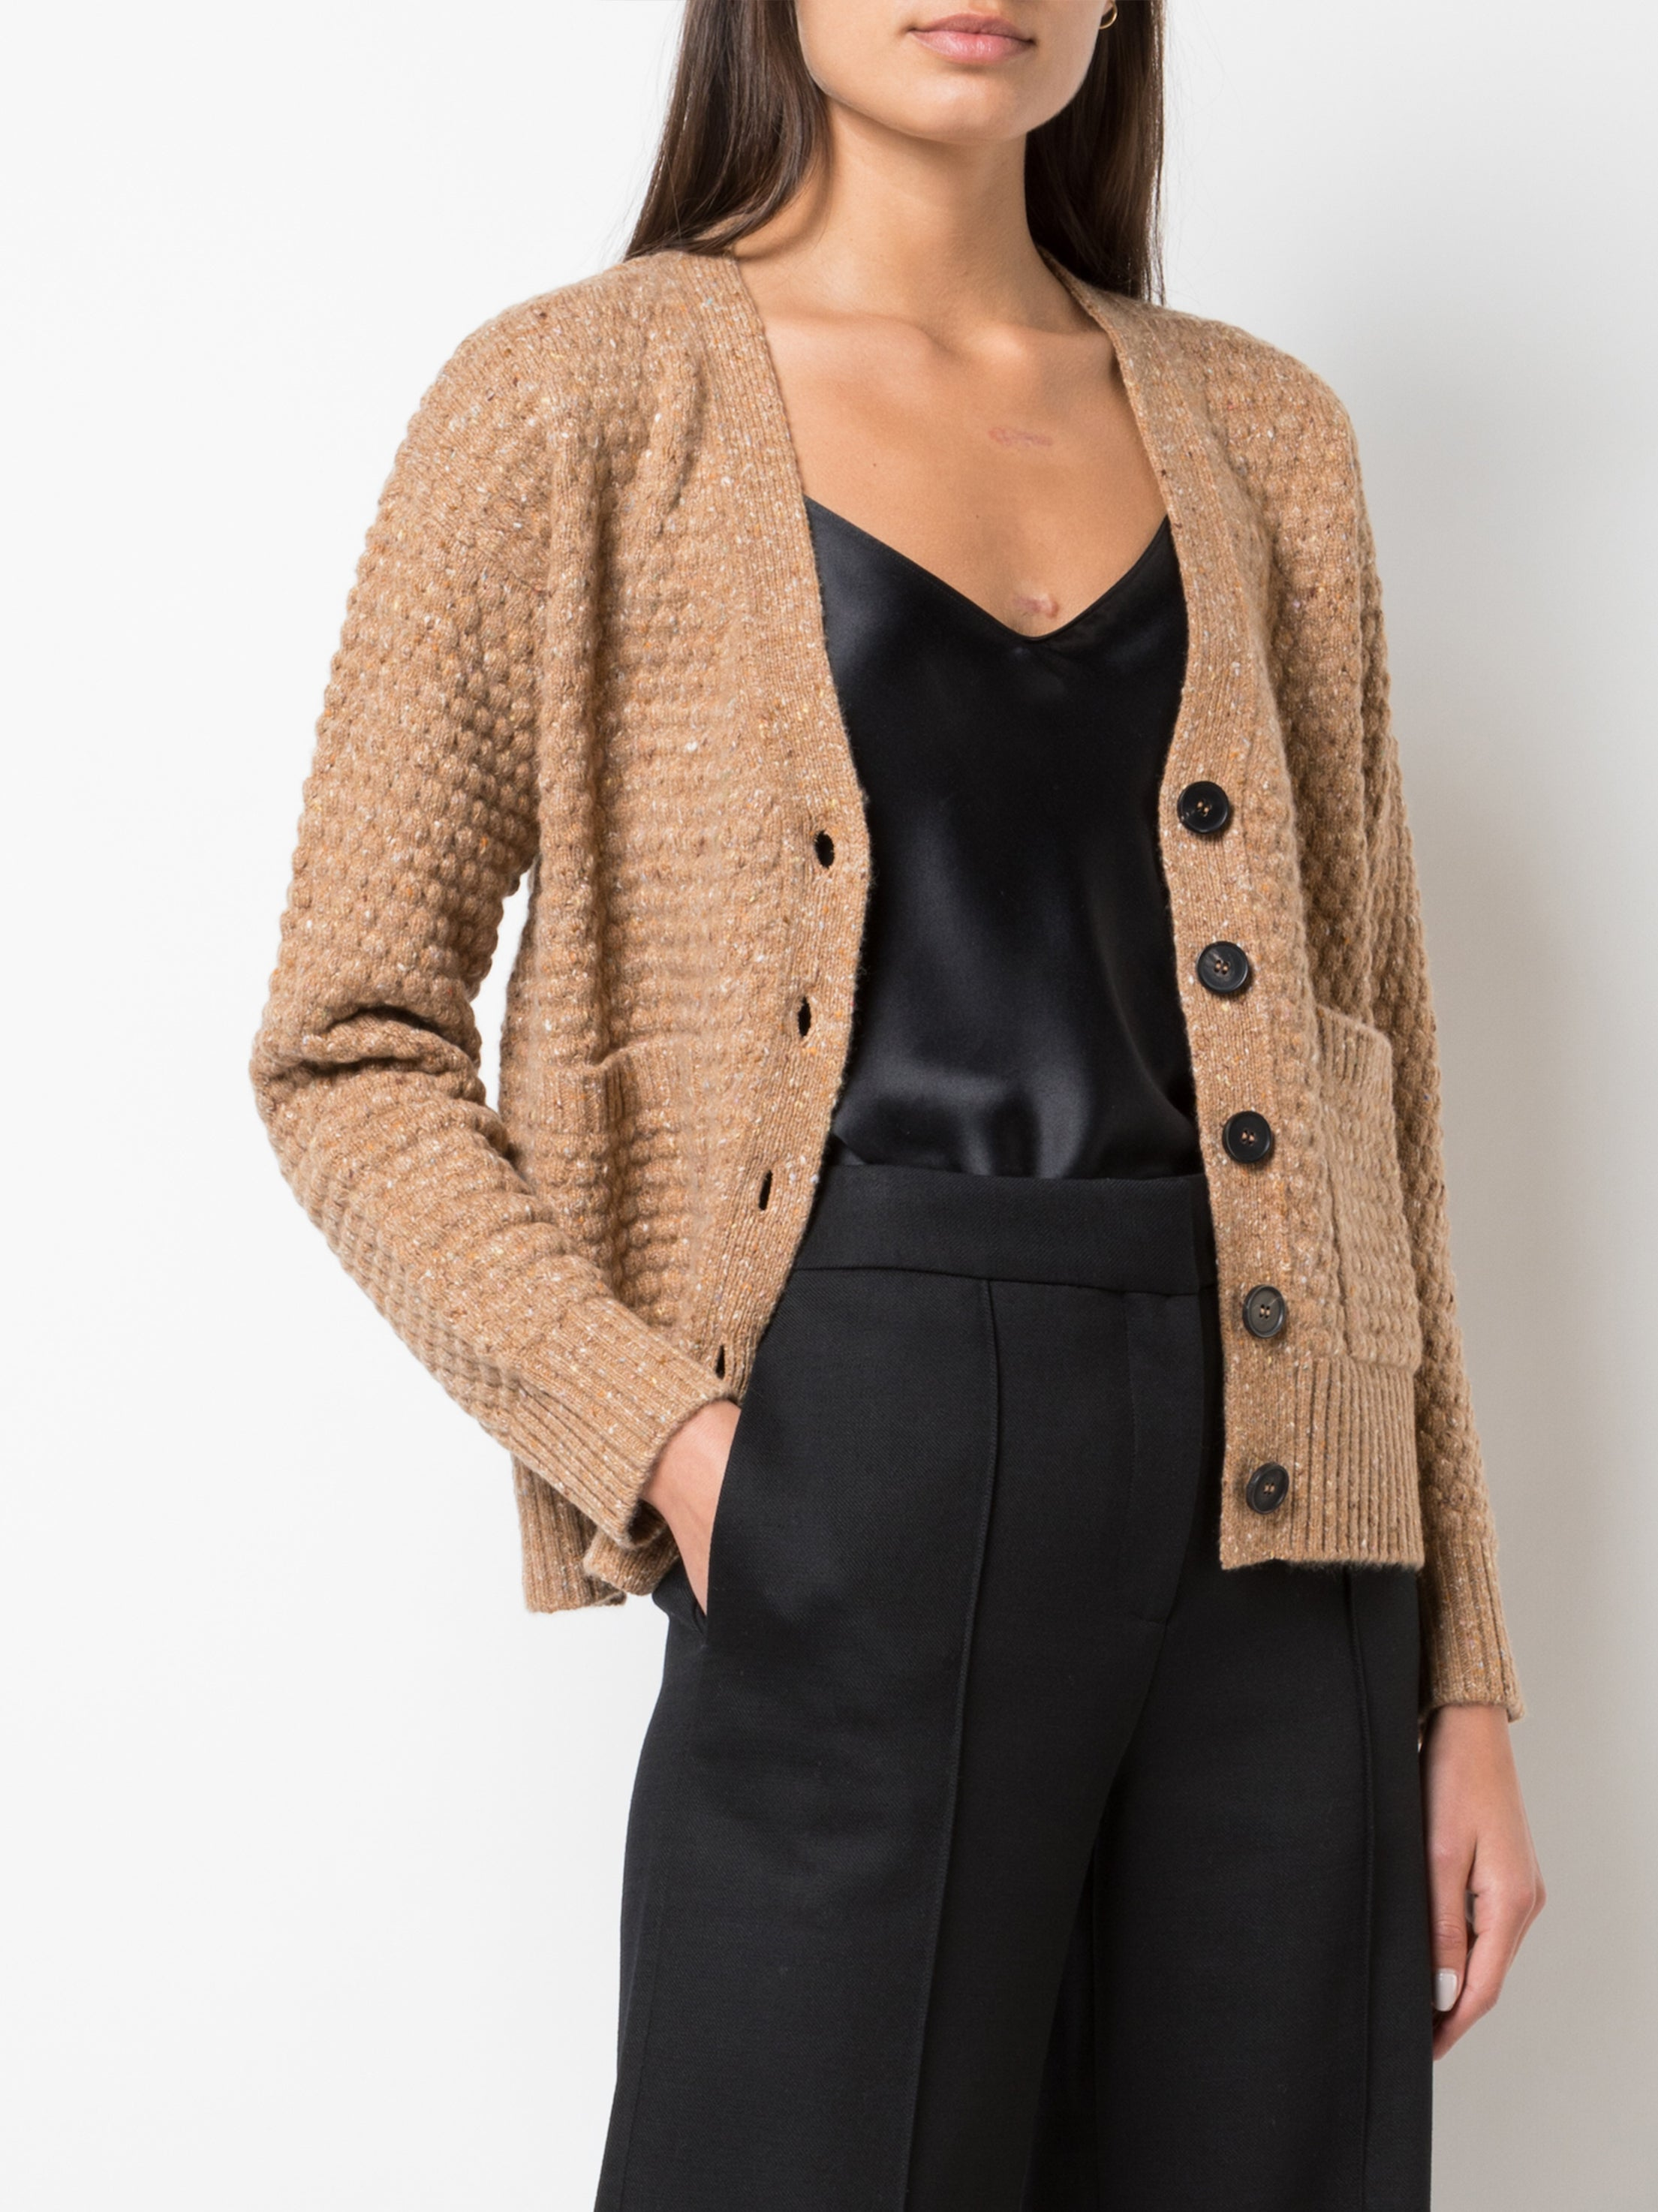 CROPPED CARDIGAN IN MARLED WOOL CASHMERE